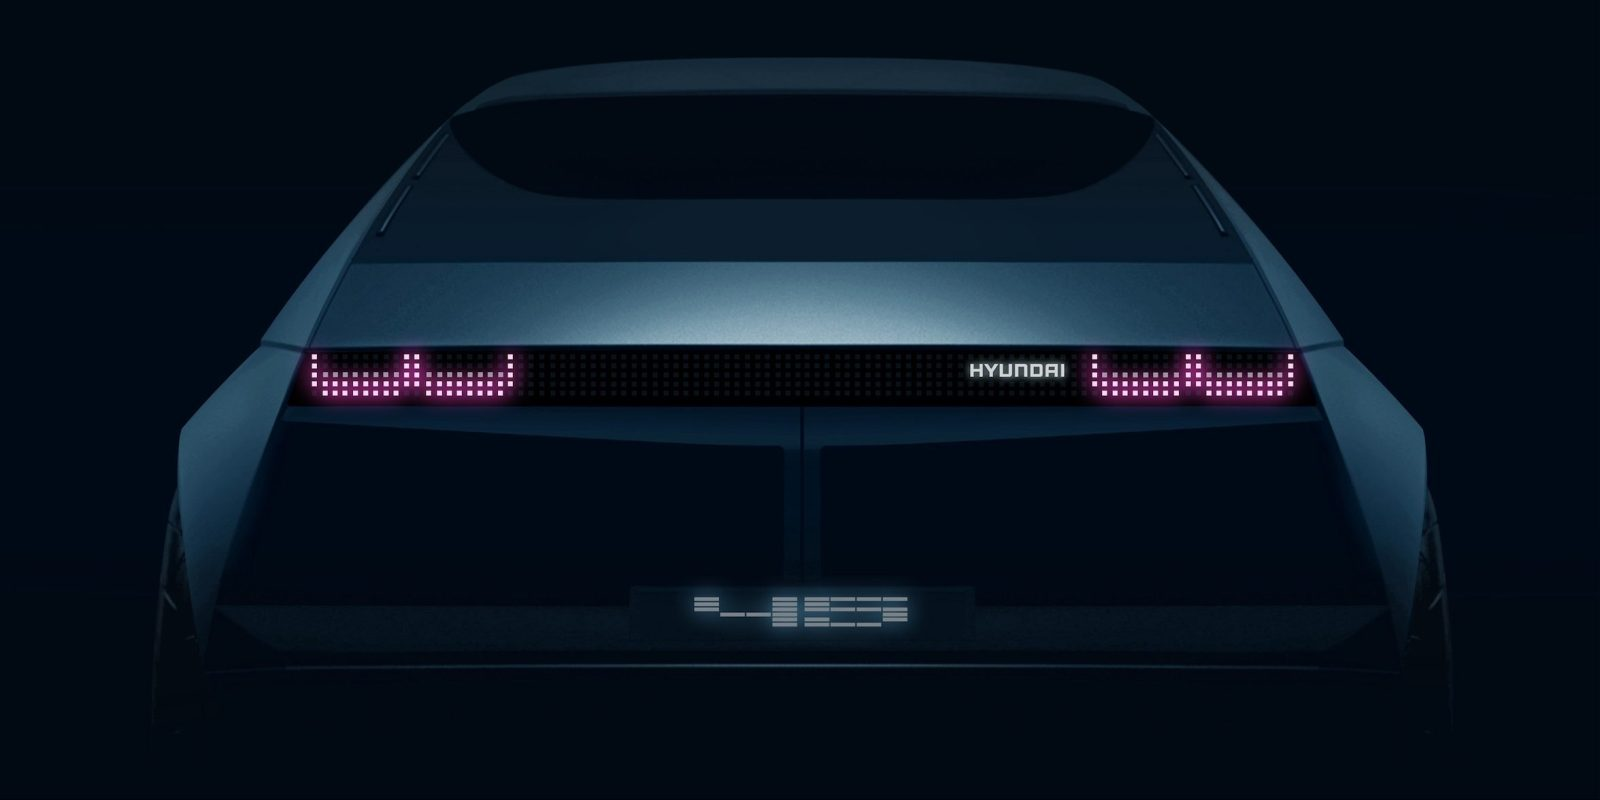 Hyundai teases a new 1970s-inspired electric car to be unveiled next month